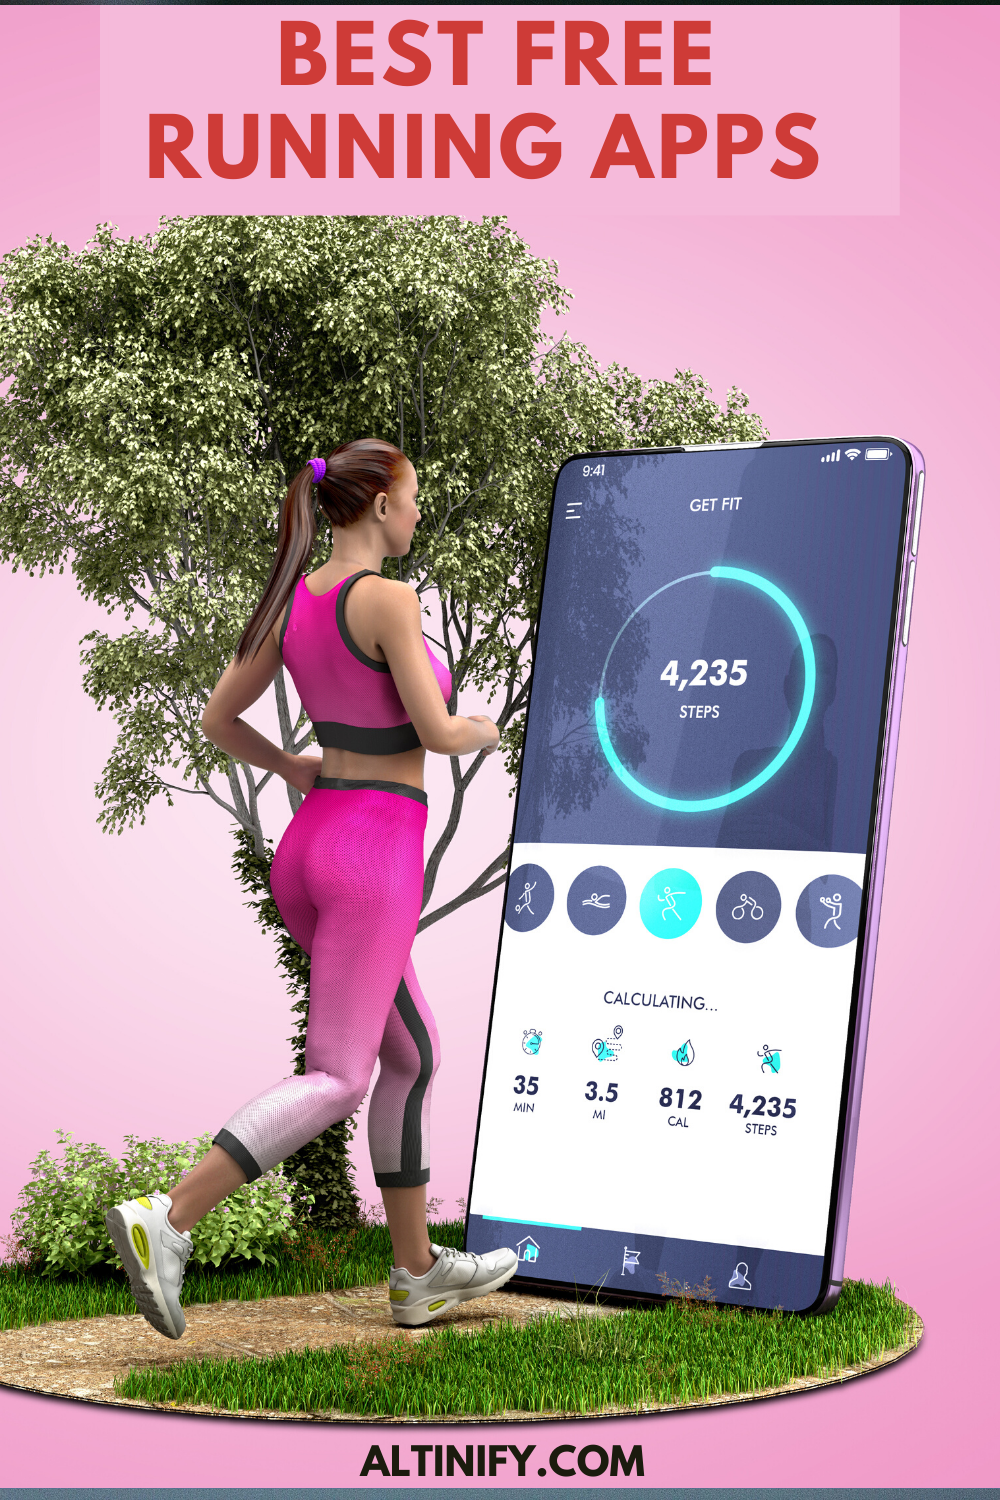 Best Free Running Apps In 2020 Workout For Beginners Workout Videos For Women Workout Apps